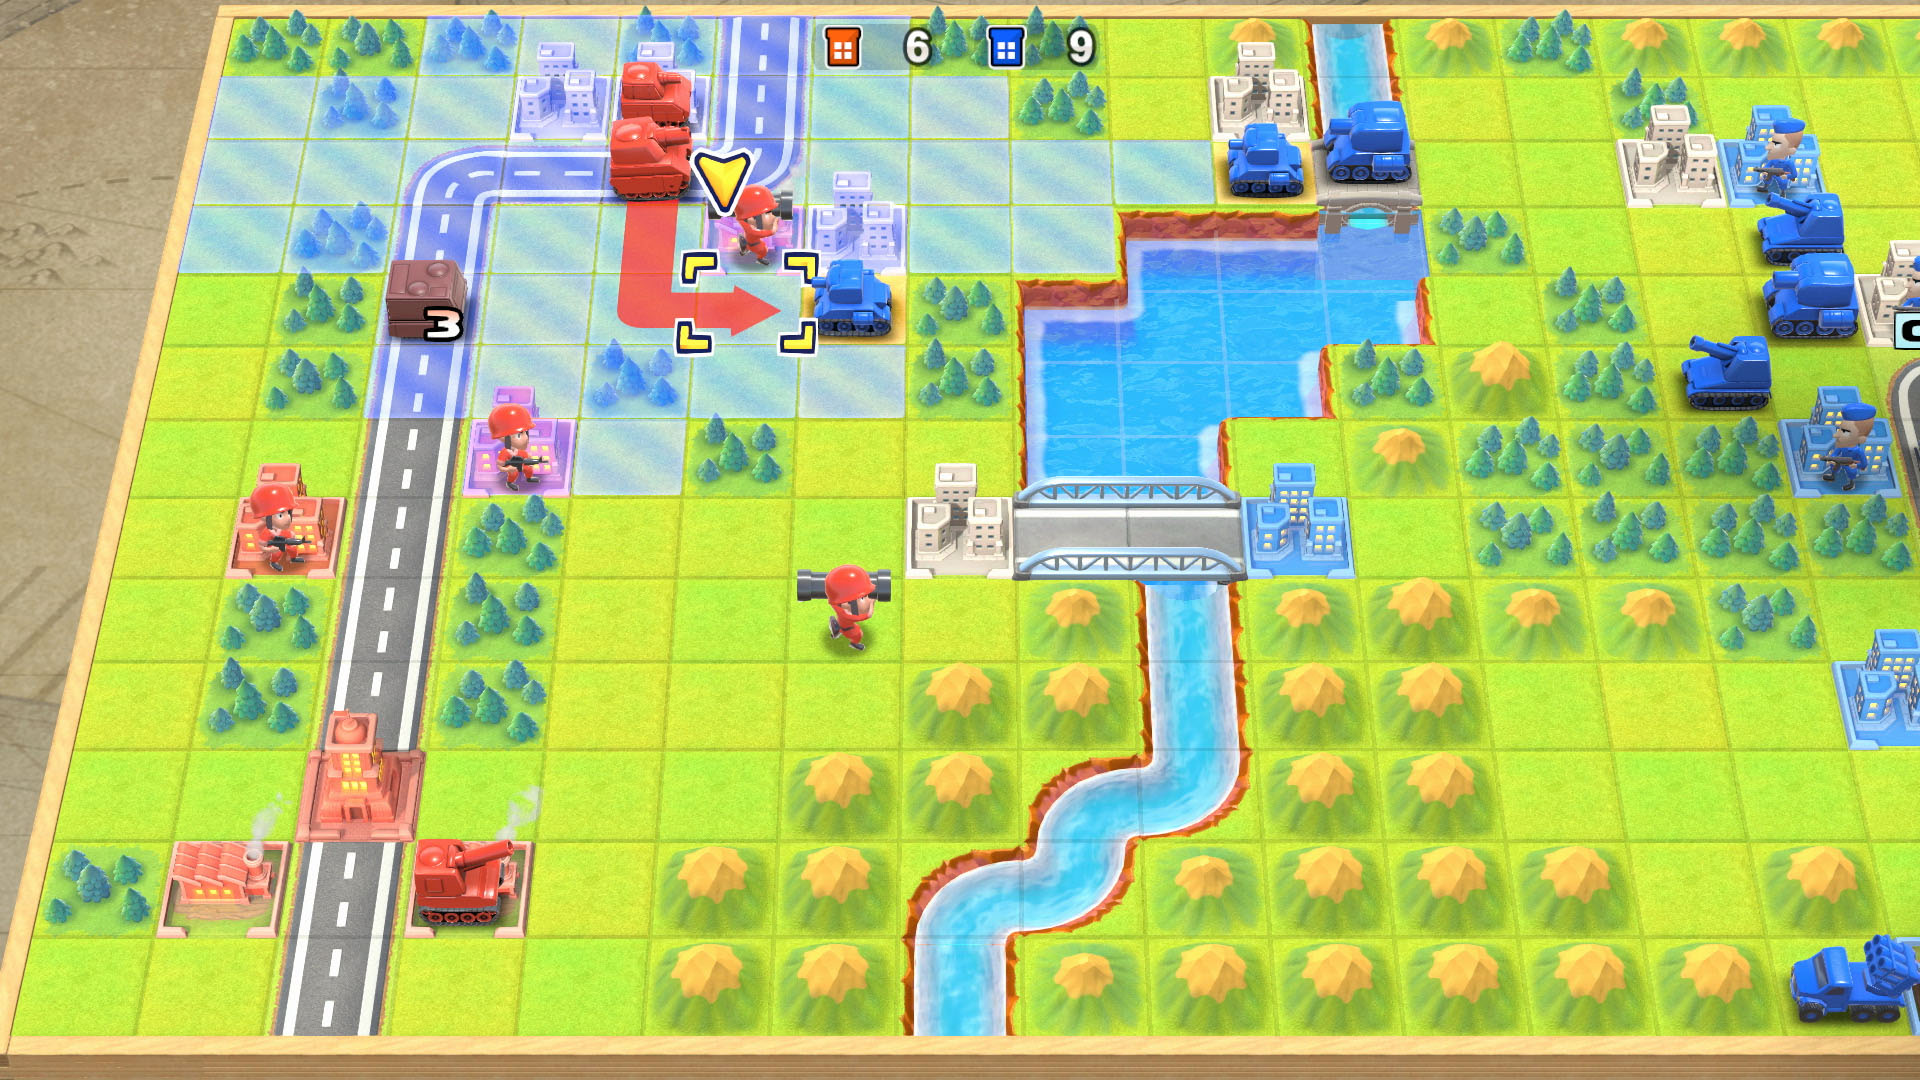 Advance Wars 1 + 2 Re-Boot Camp